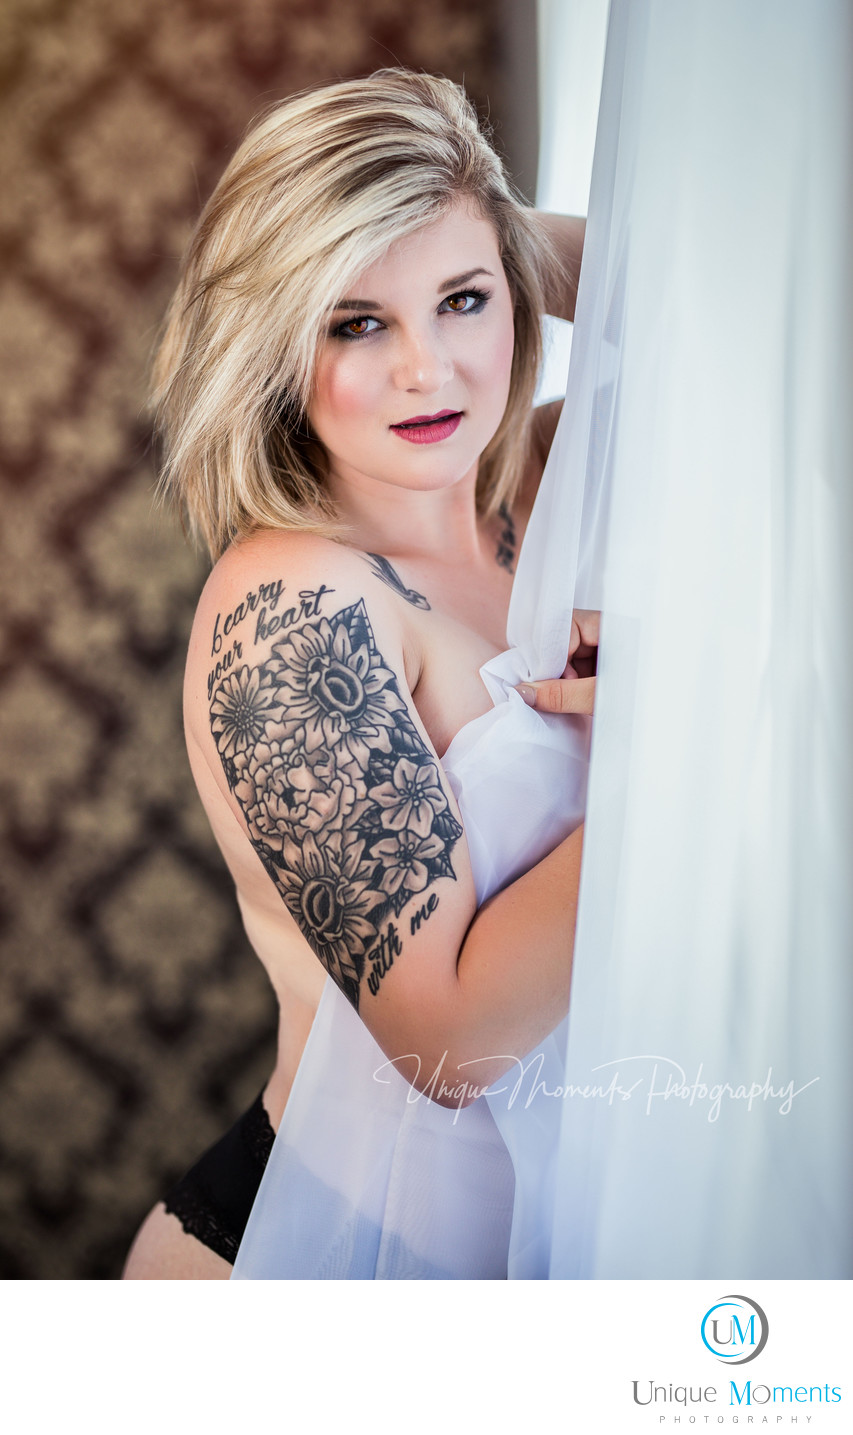 Boudoir style pictures Gig Harbor Wa 98335